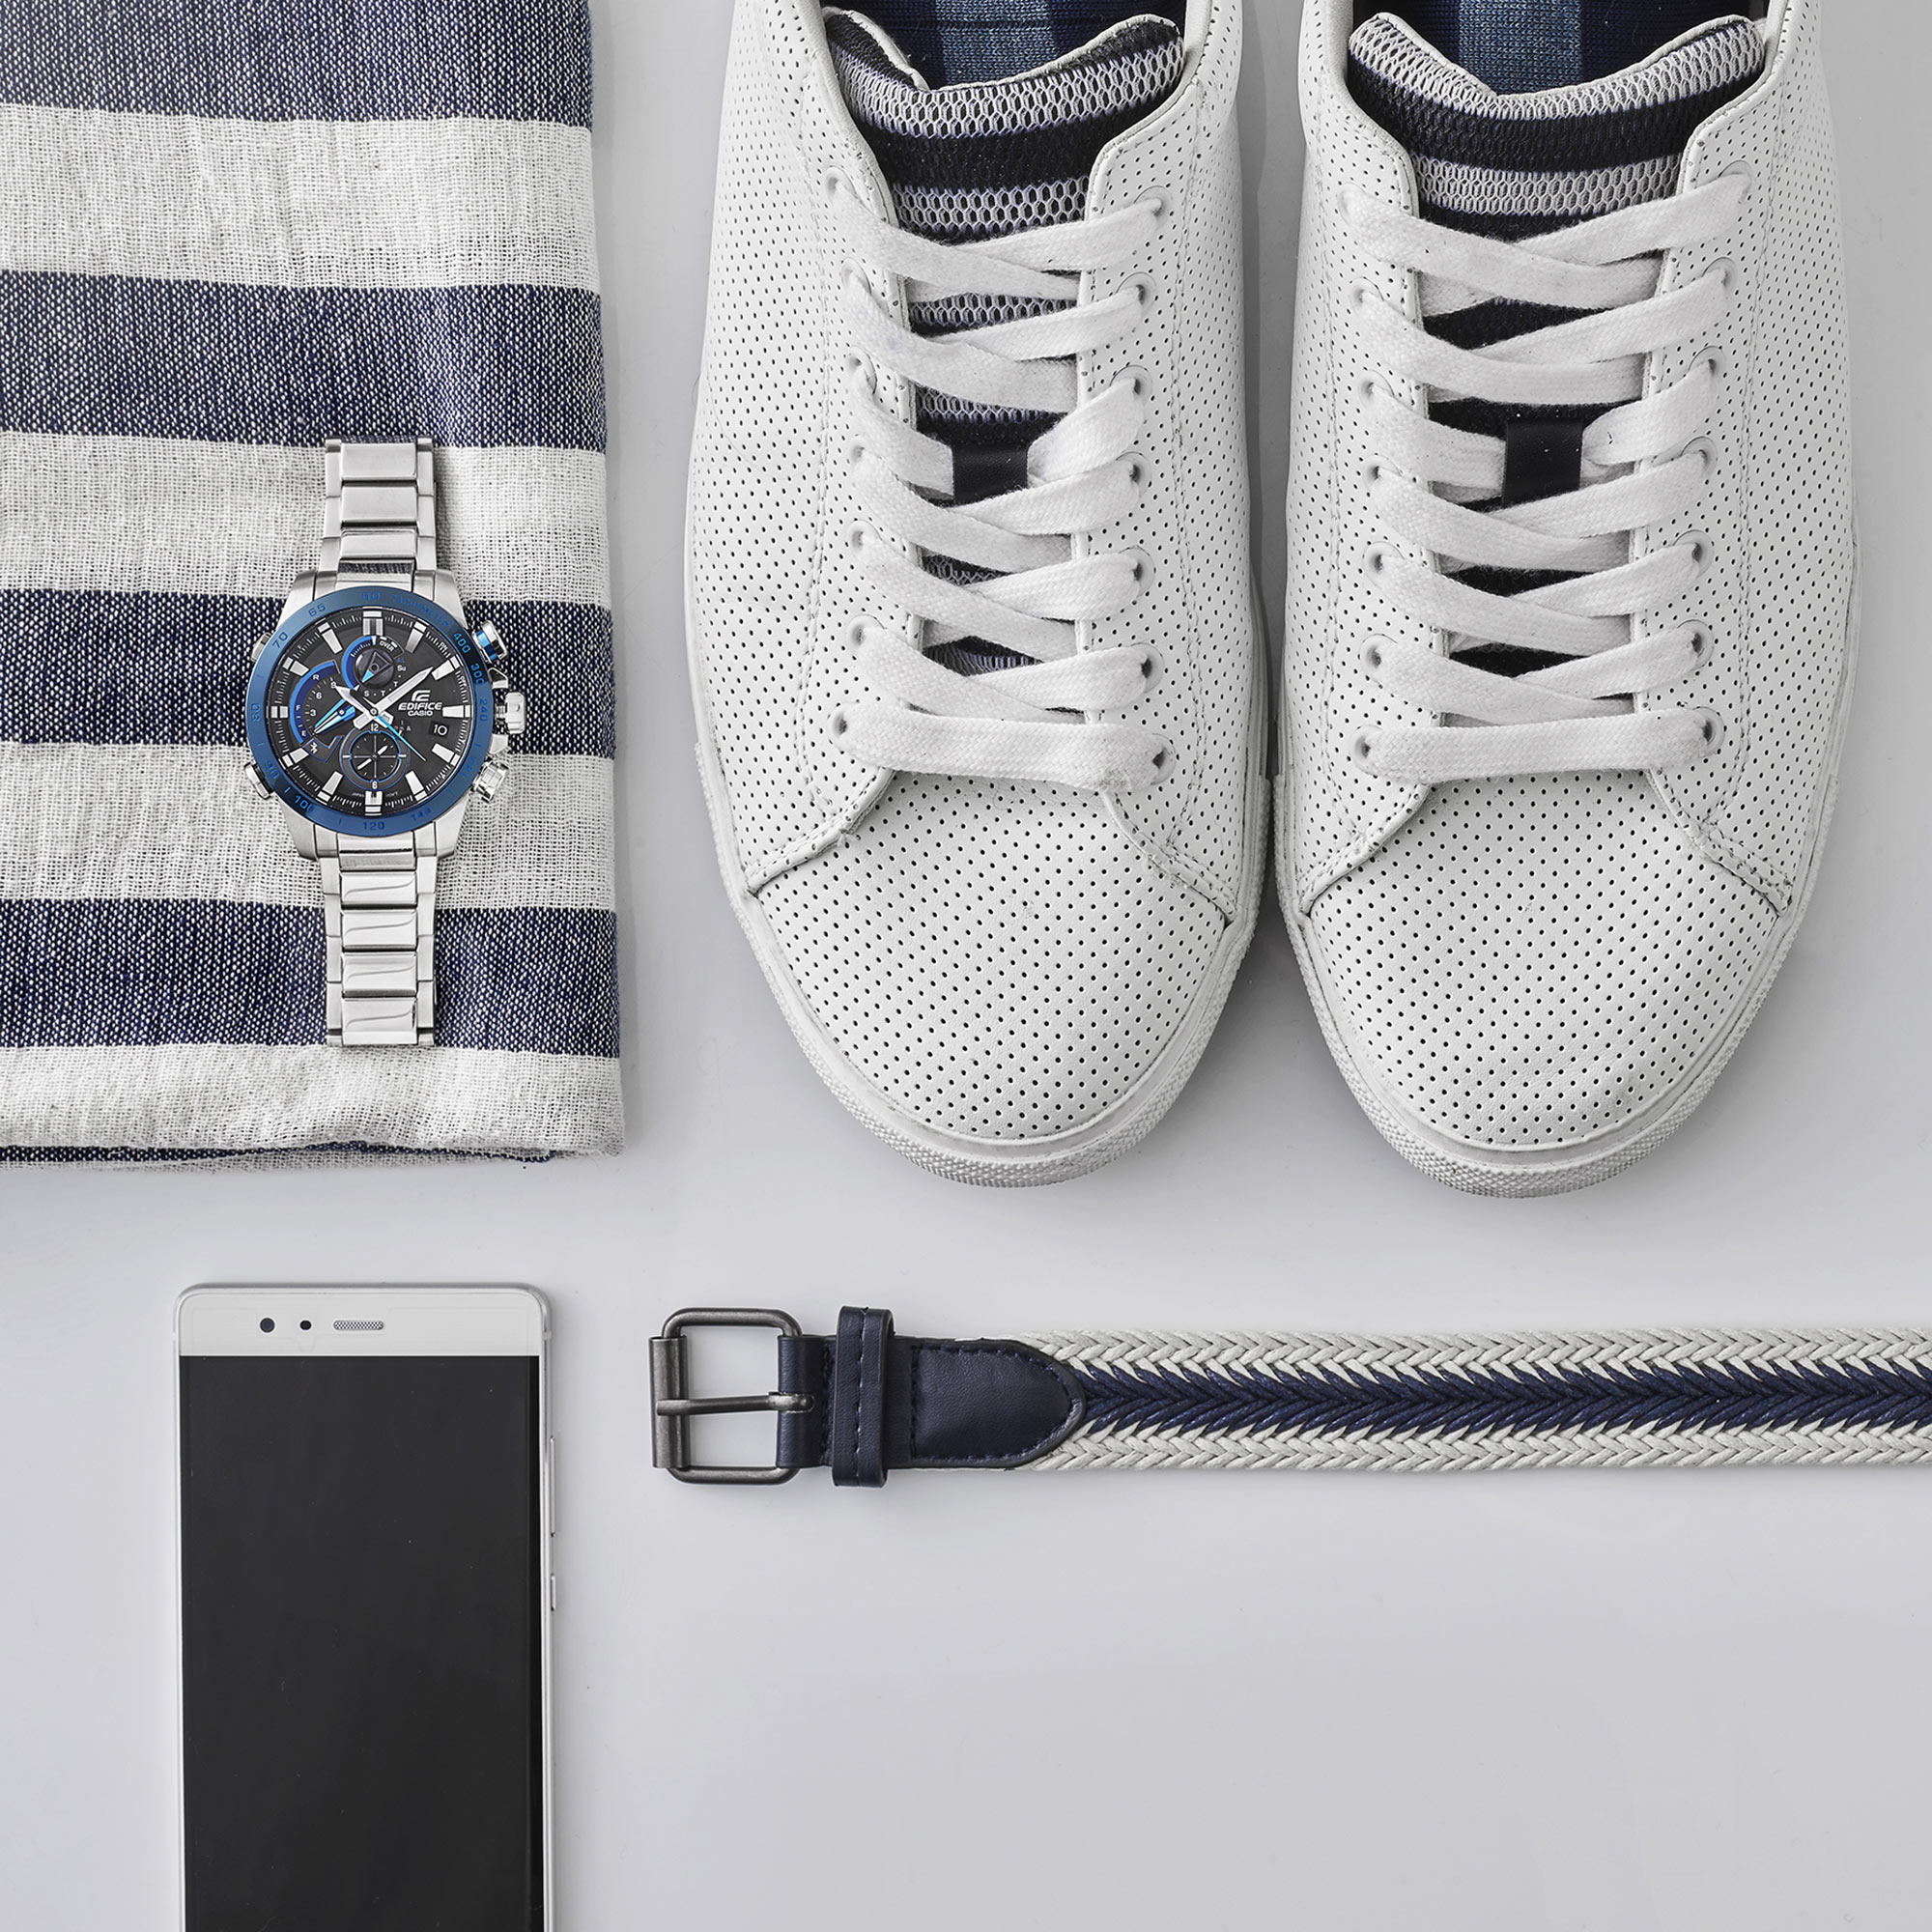 Man White Shoes Belt Smartphone Still Life Shot for Casio by Fotografando